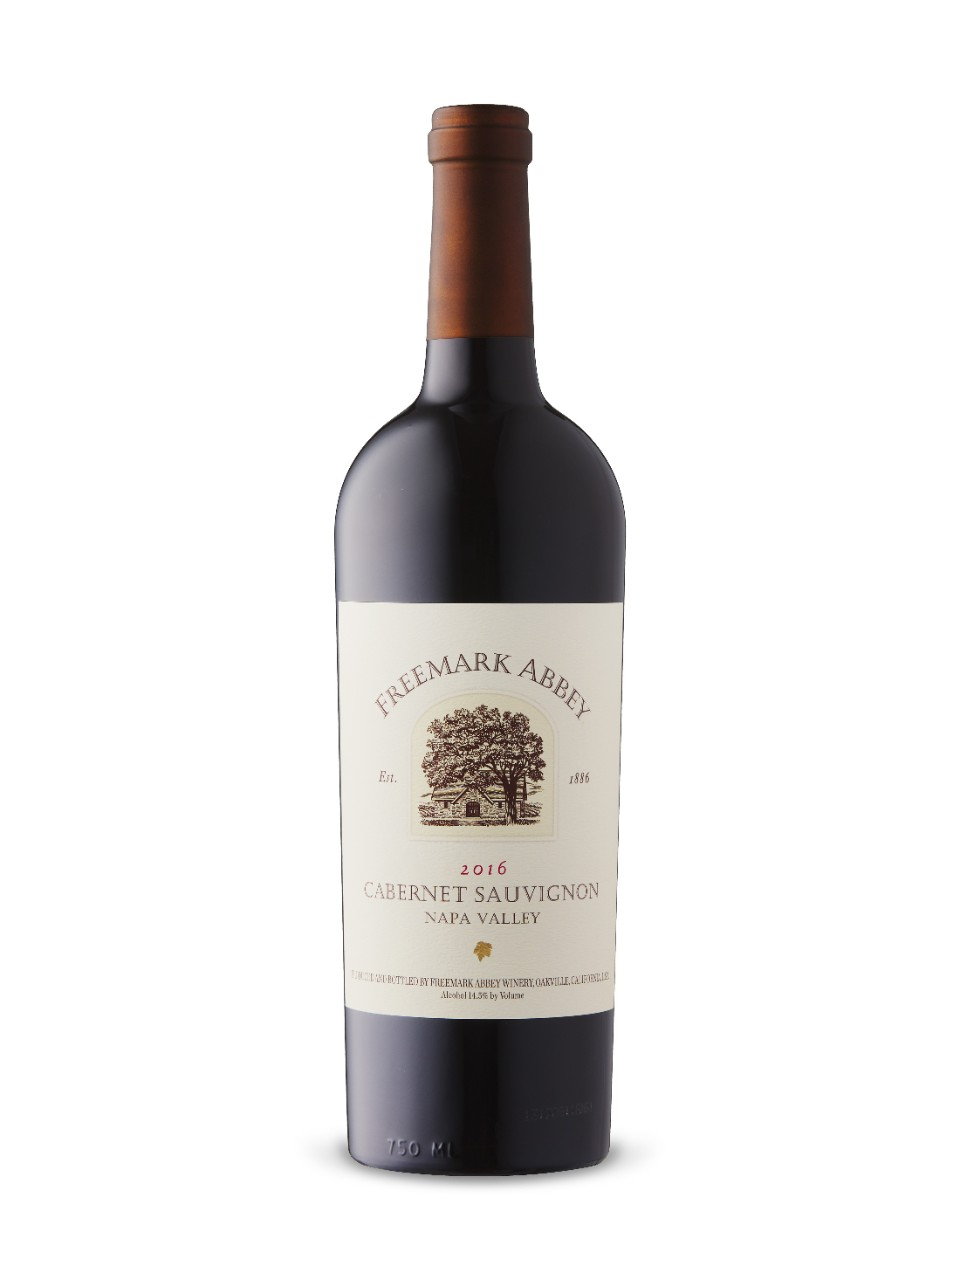 Freemark Abbey Cabernet Sauvignon 2015 from LCBO